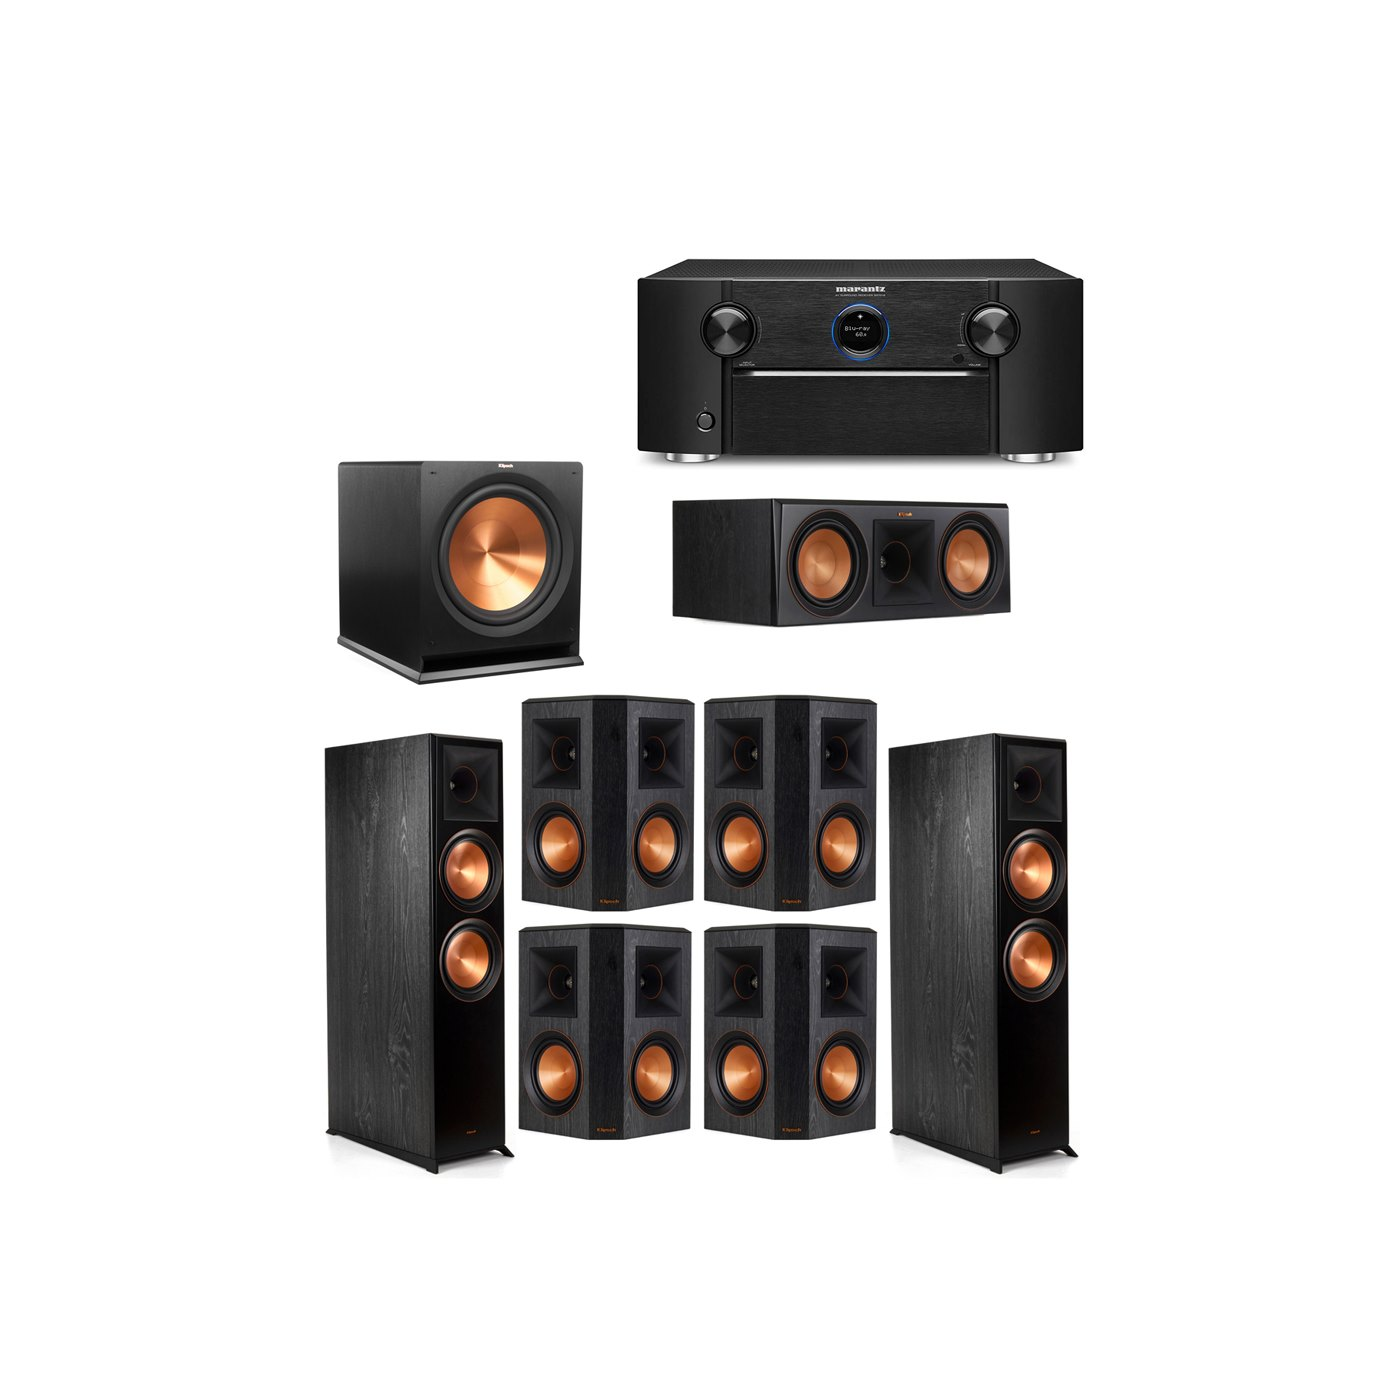 Klipsch 7.1 System with 2 RP-8000F Floorstanding Speakers, 1 Klipsch RP-600C Center Speaker, 4 Klipsch RP-502S Surround Speakers, 1 Klipsch R-115SW Subwoofer, 1 Marantz SR7012 A/V Receiver